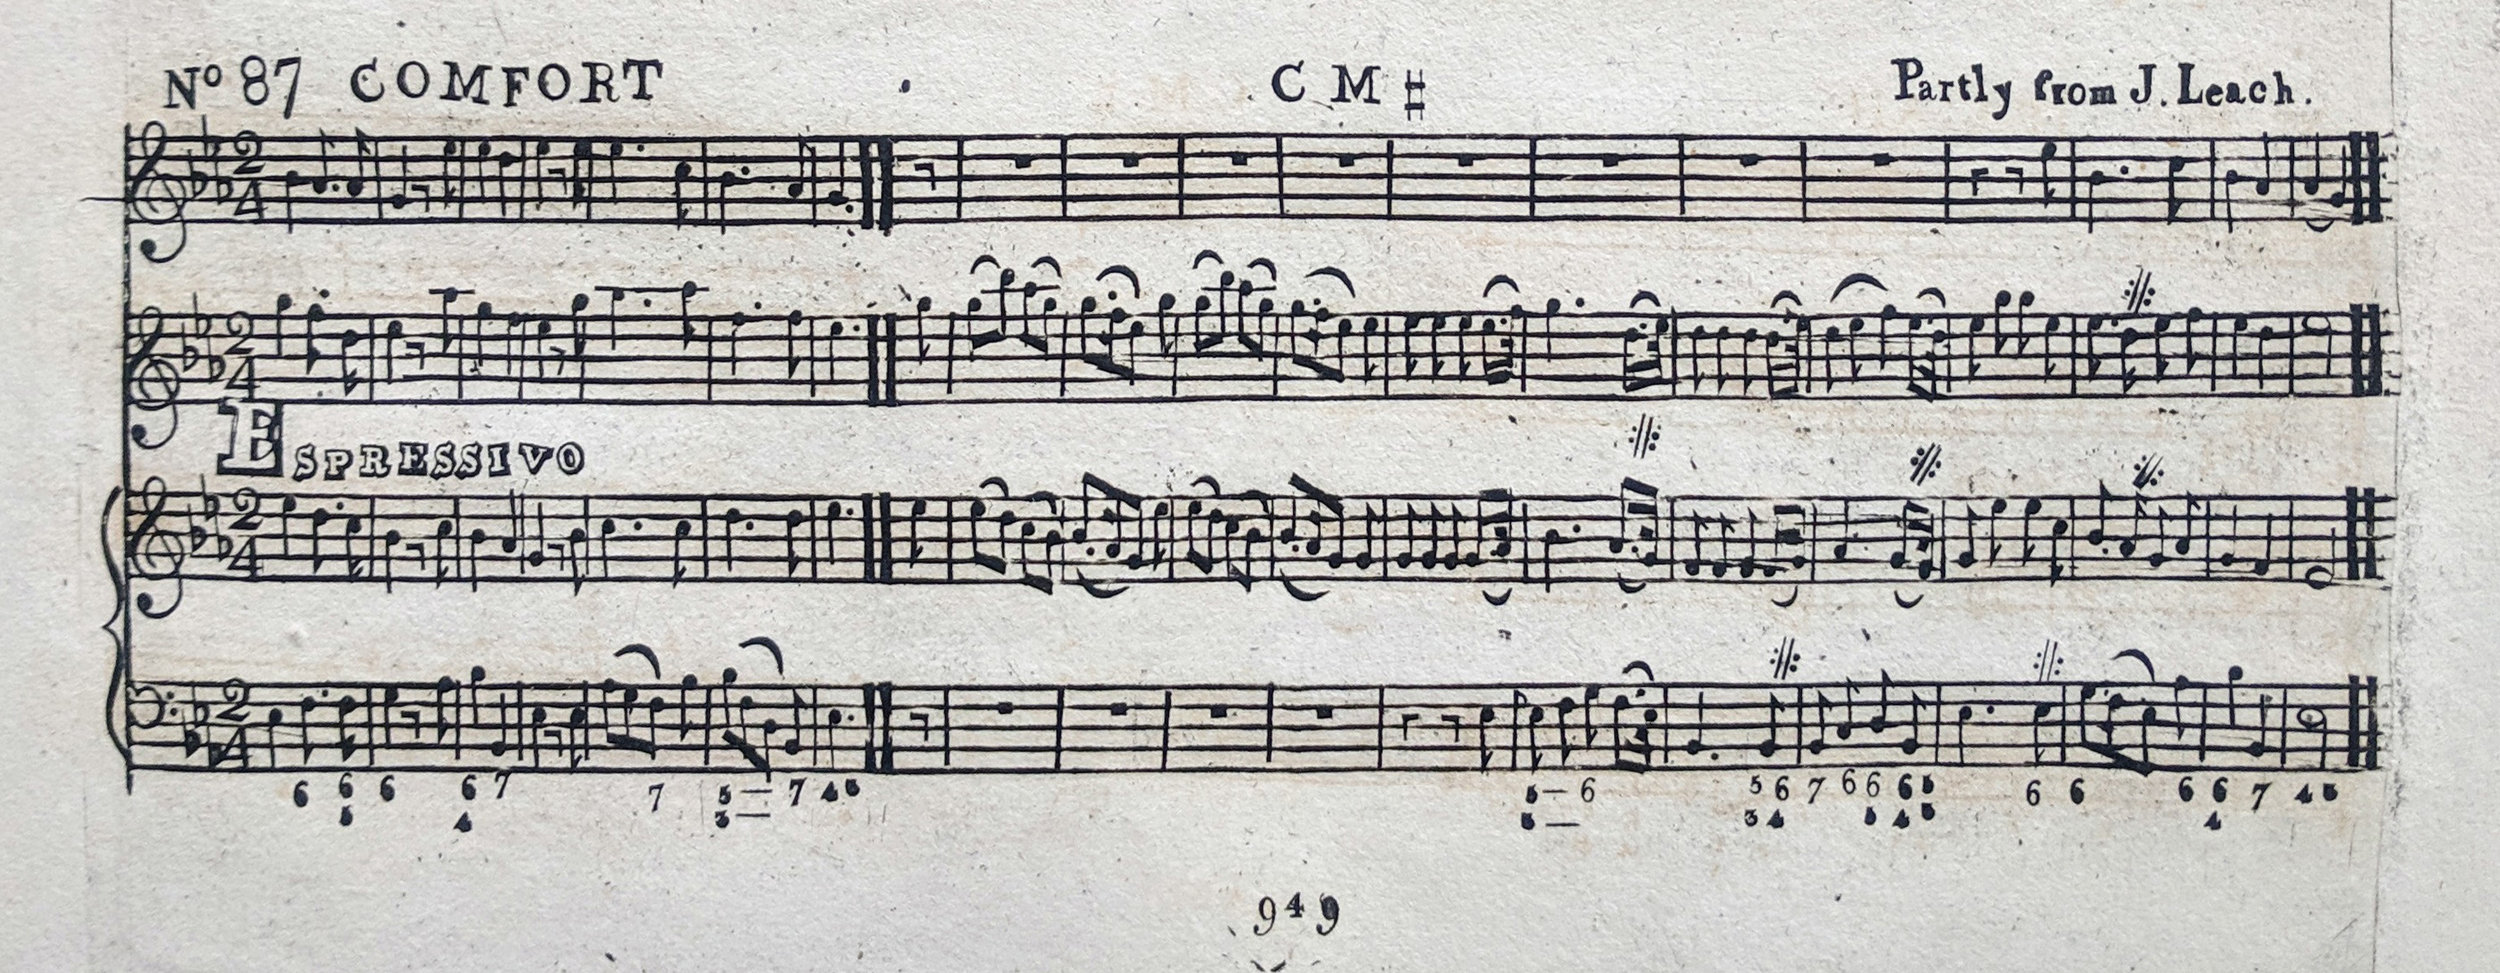 Fig. 2.  Charles Rider,  Psalmodia Britannica , vol. 4 (ca. 1831), no. 87, p. 949. Melody in the third voice.